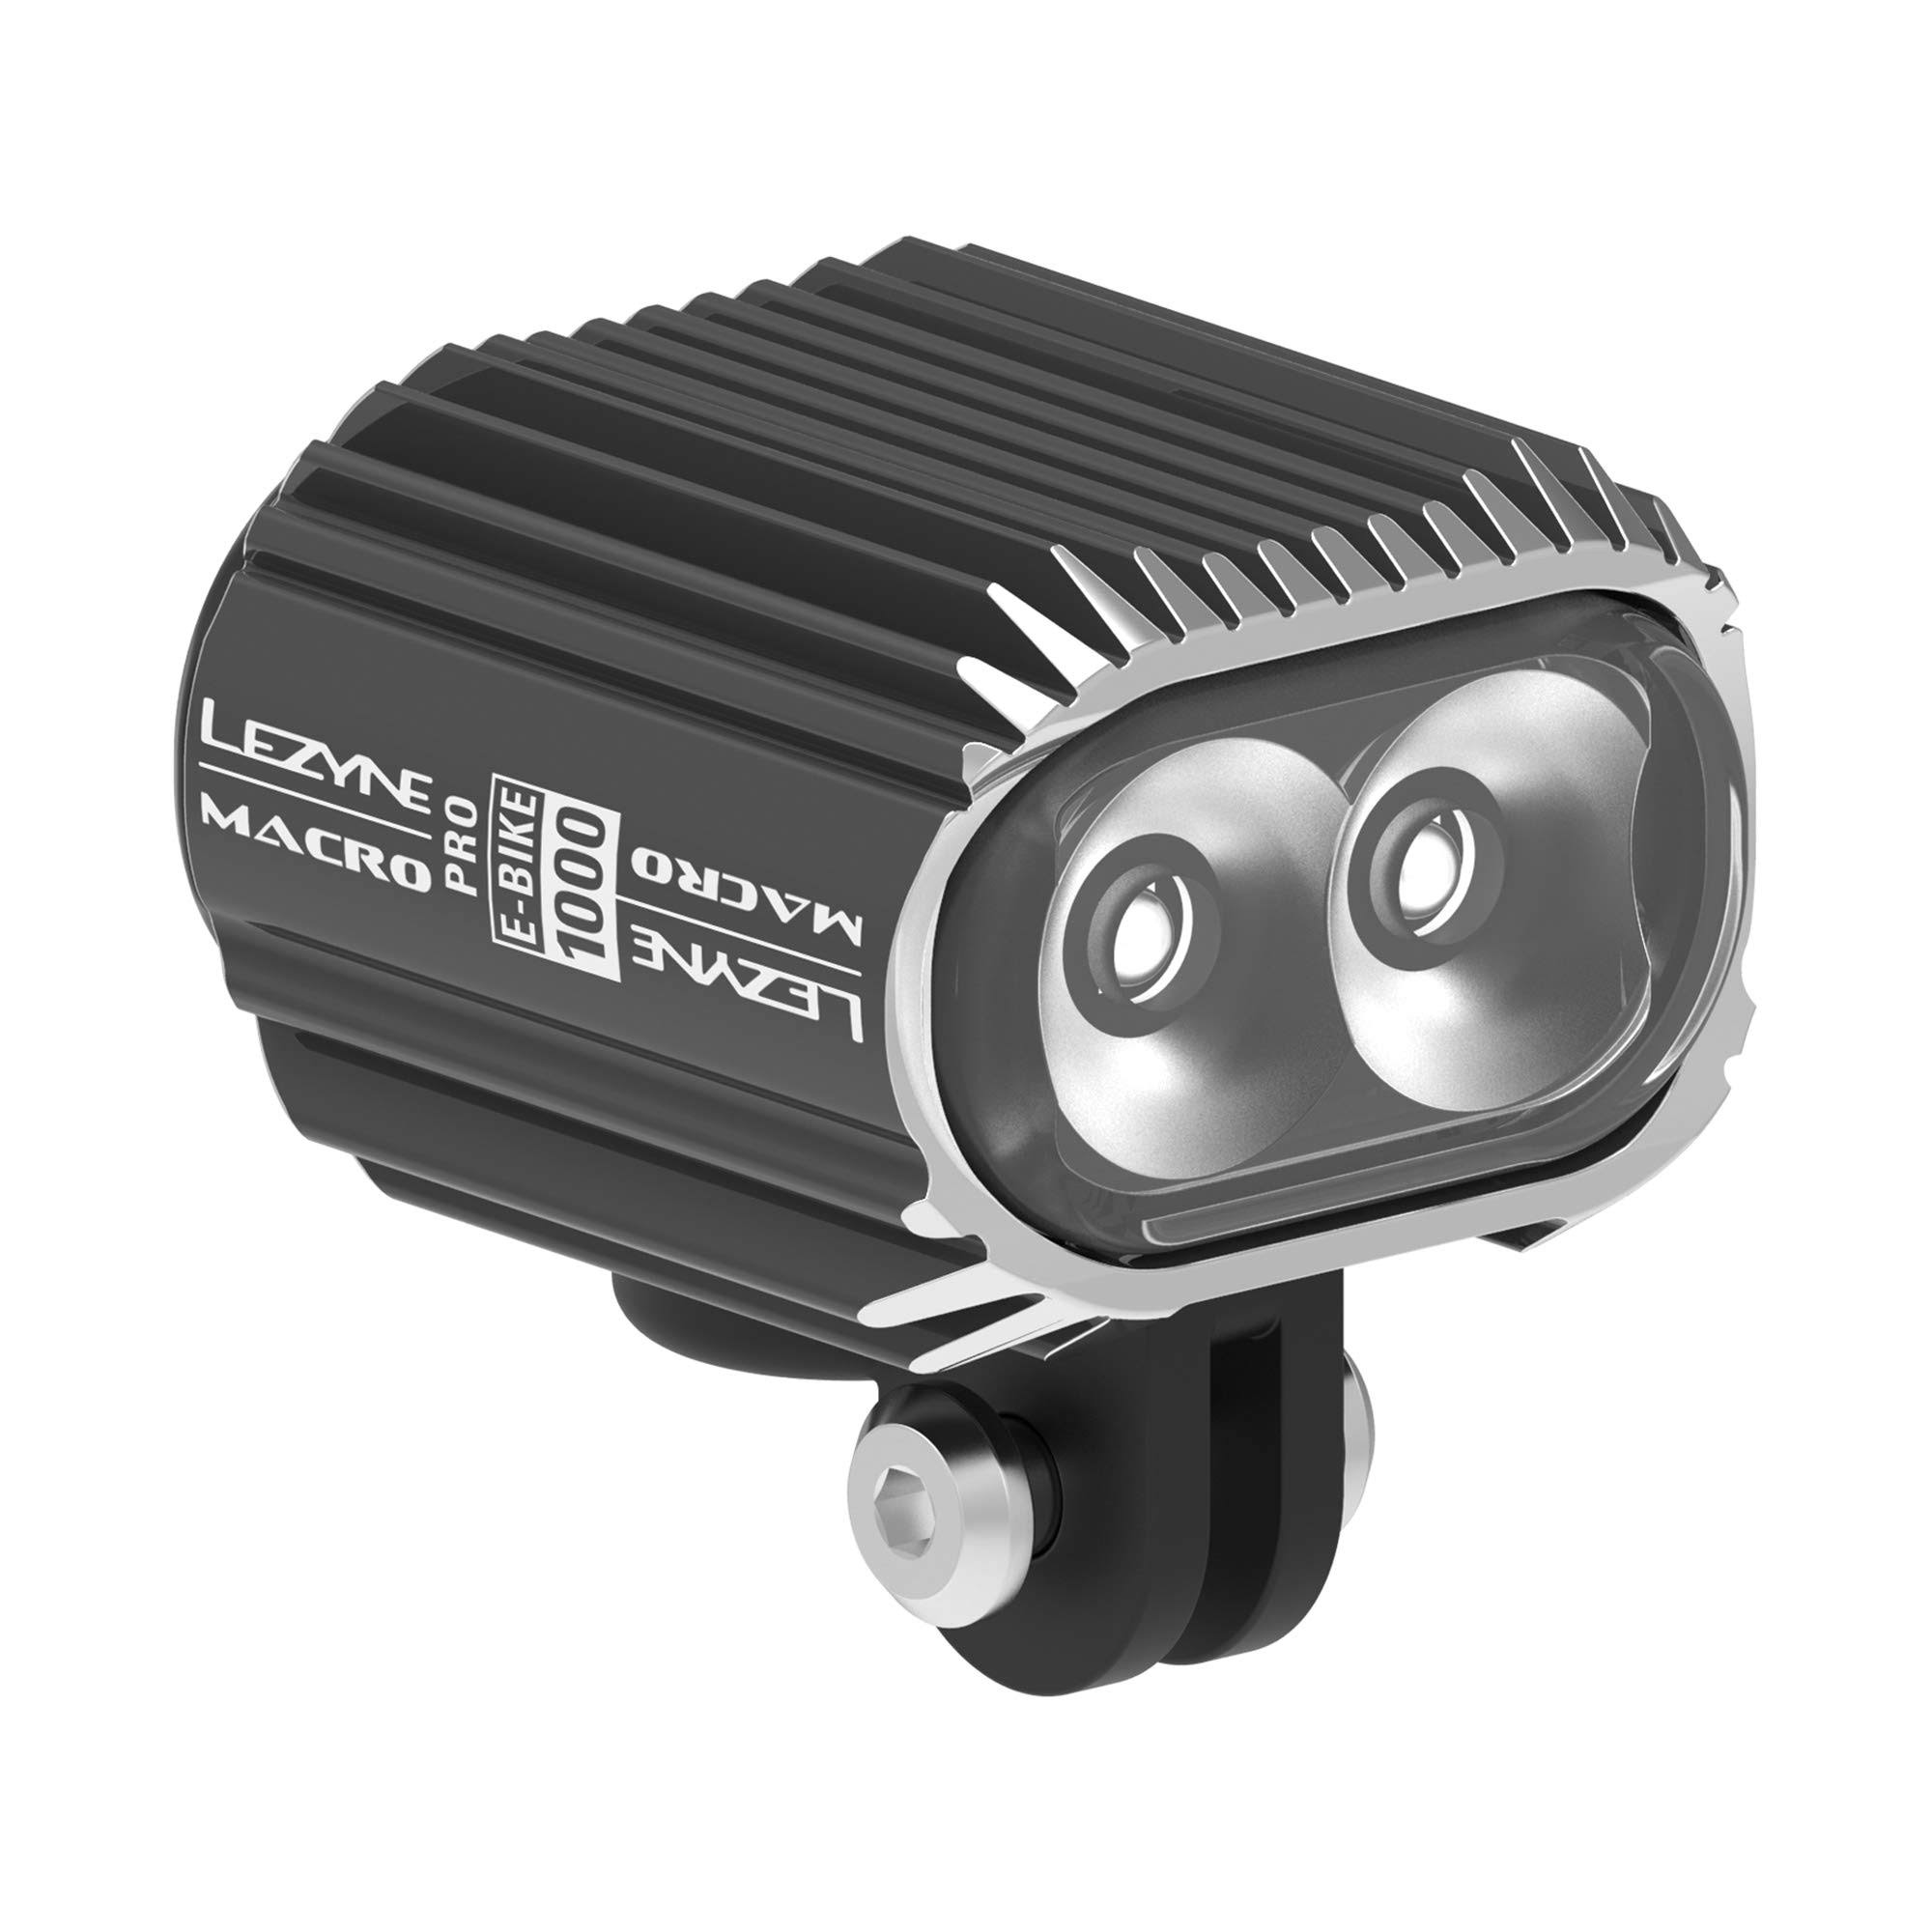 Lezyne Ebike Macro Drive 1000 LED Headlight